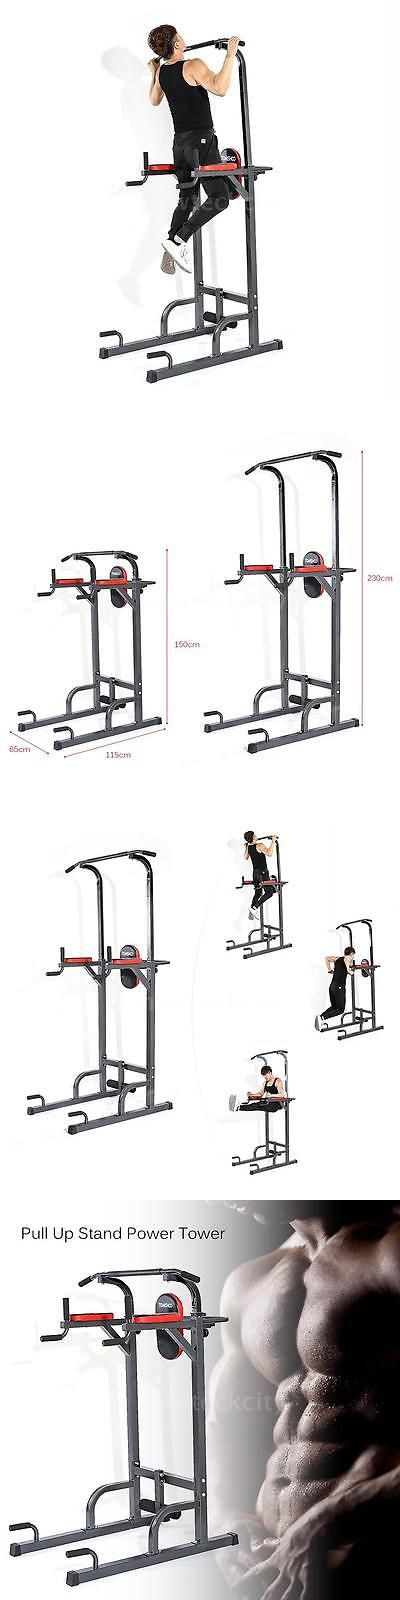 Pull Up Bars 179816: Tomshoo Chin Up Tower Rack Pull Up Stand Bar Leg Raise Home Gym Workout Weight -> BUY IT NOW ONLY: $108.1 on eBay!